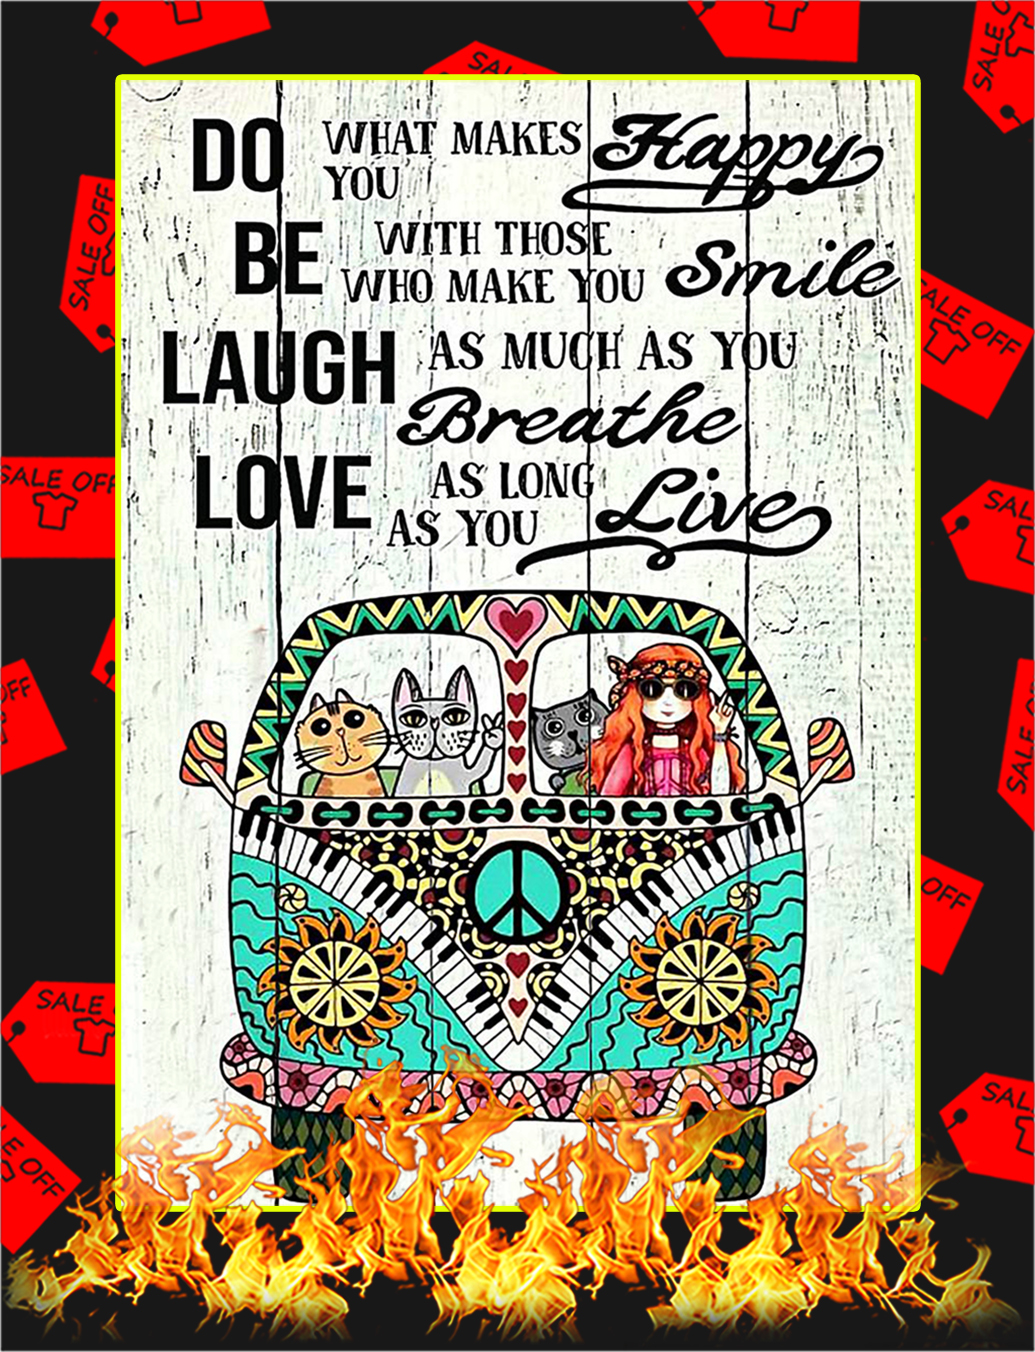 Hippie Girl and Cat do what makes you happy Poster - A2